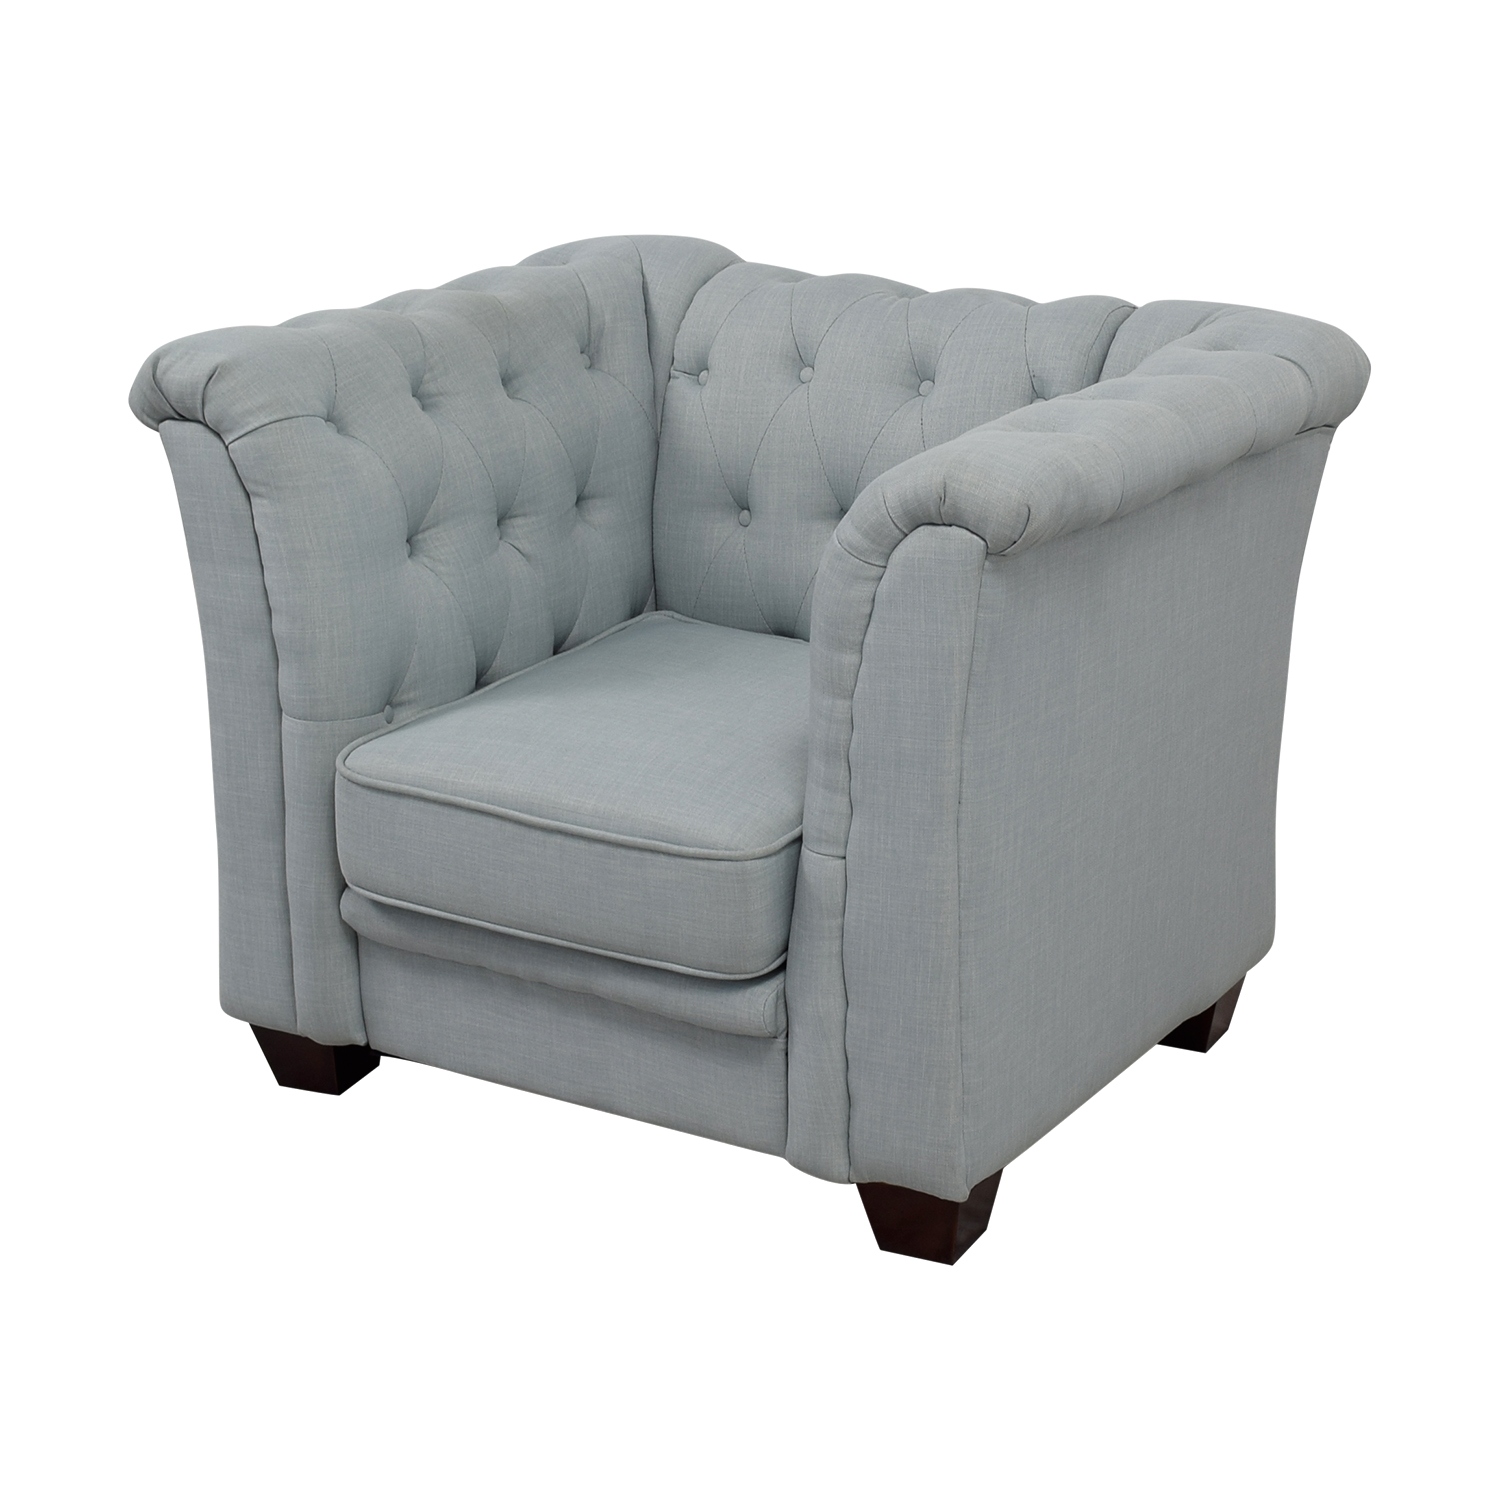 Delvi Furniture Delvi Furniture Sky Blue Tufted Accent Chair discount